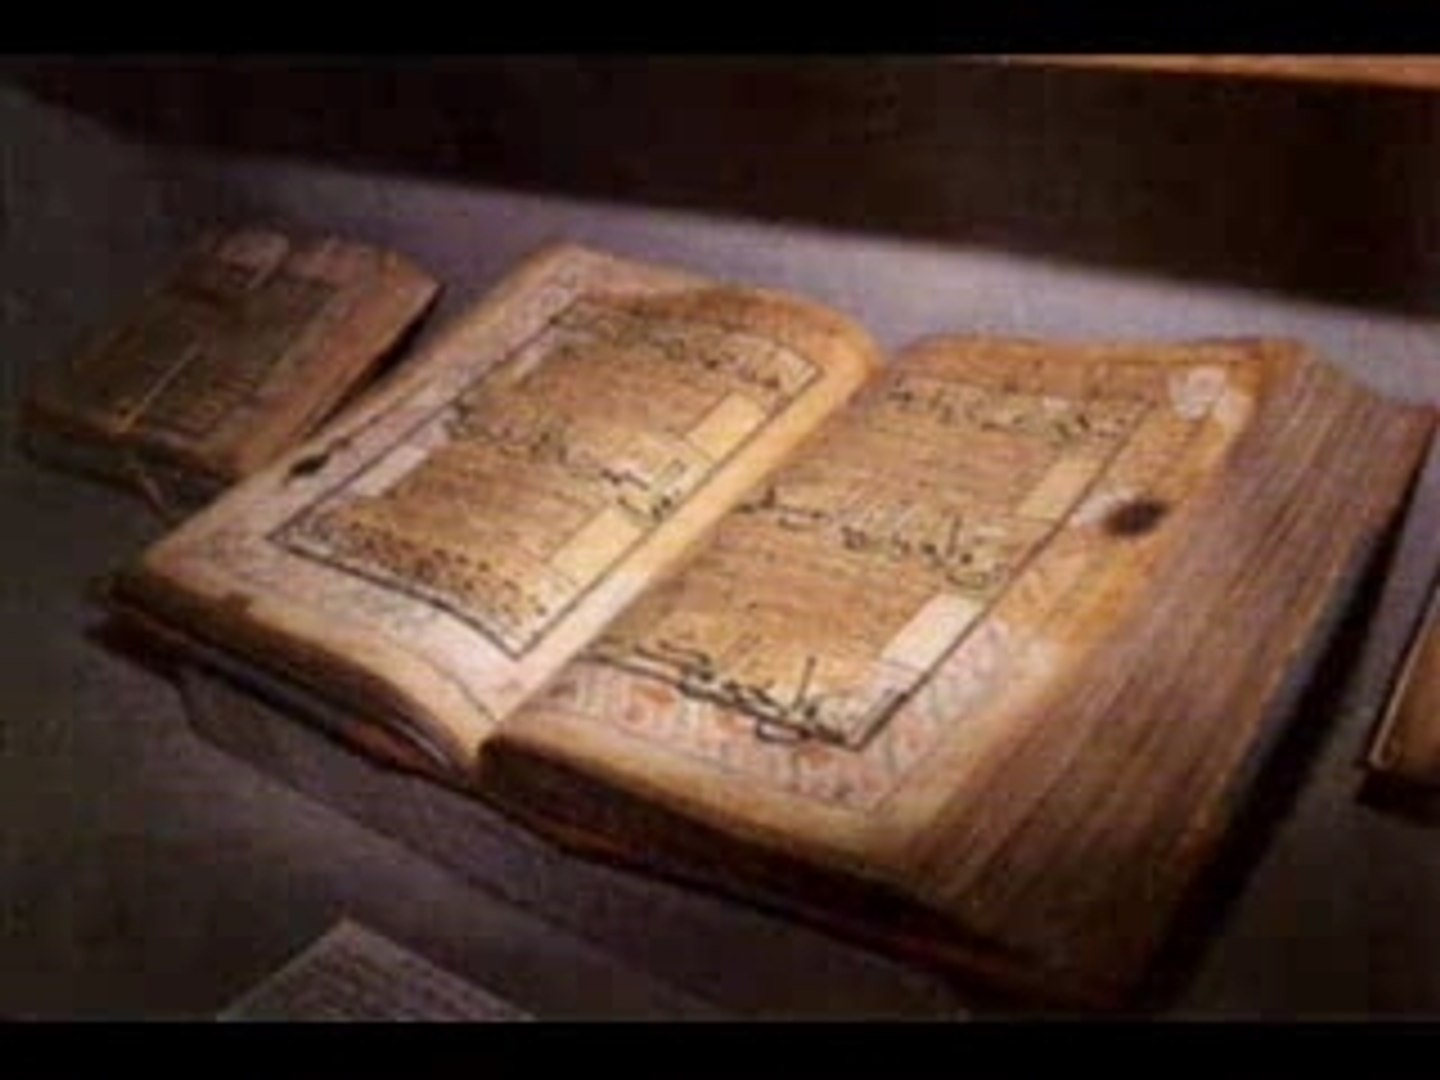 The Reciter of the Quran begins to Cry Emotional Qari